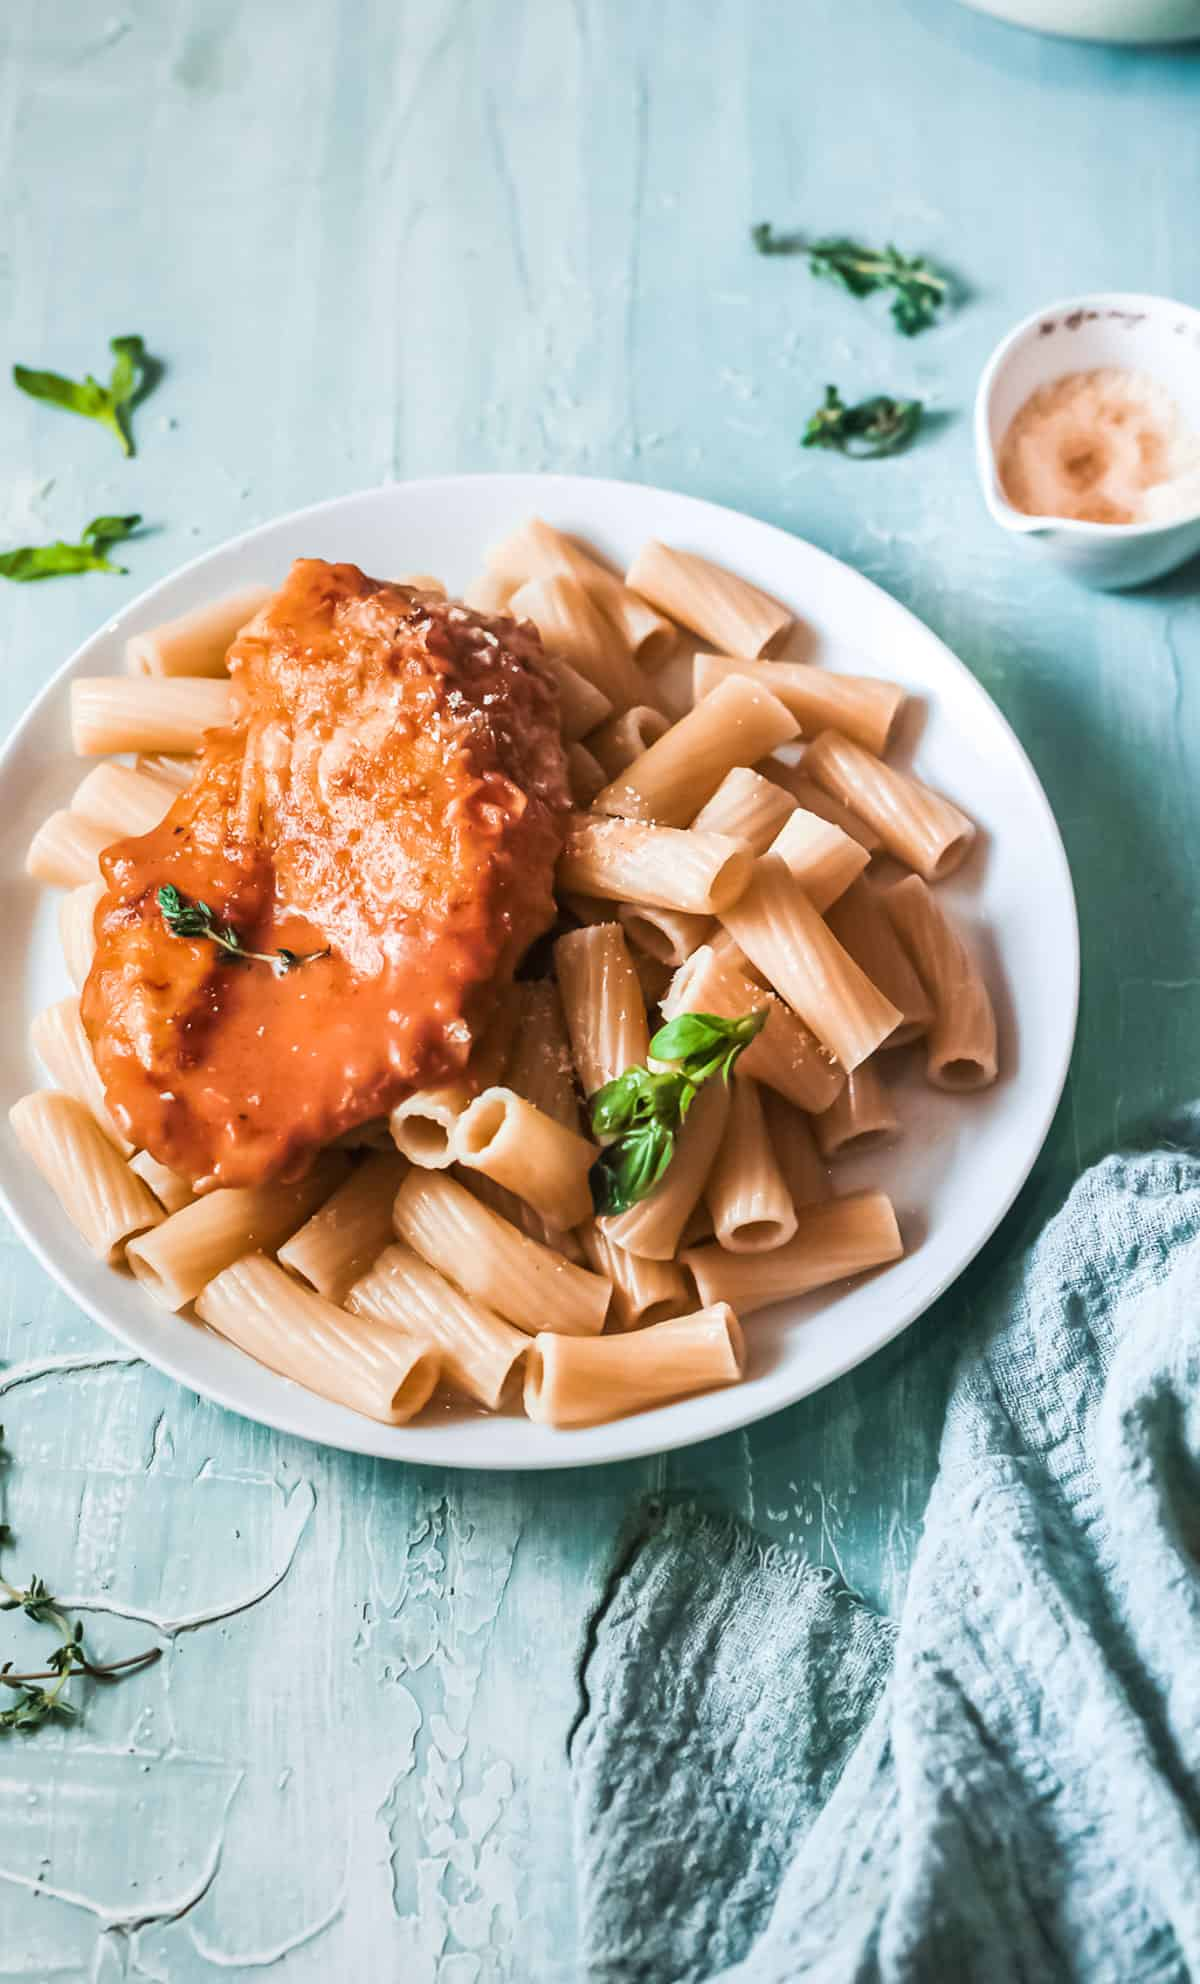 the finished cajun chicken recipe served with pasta